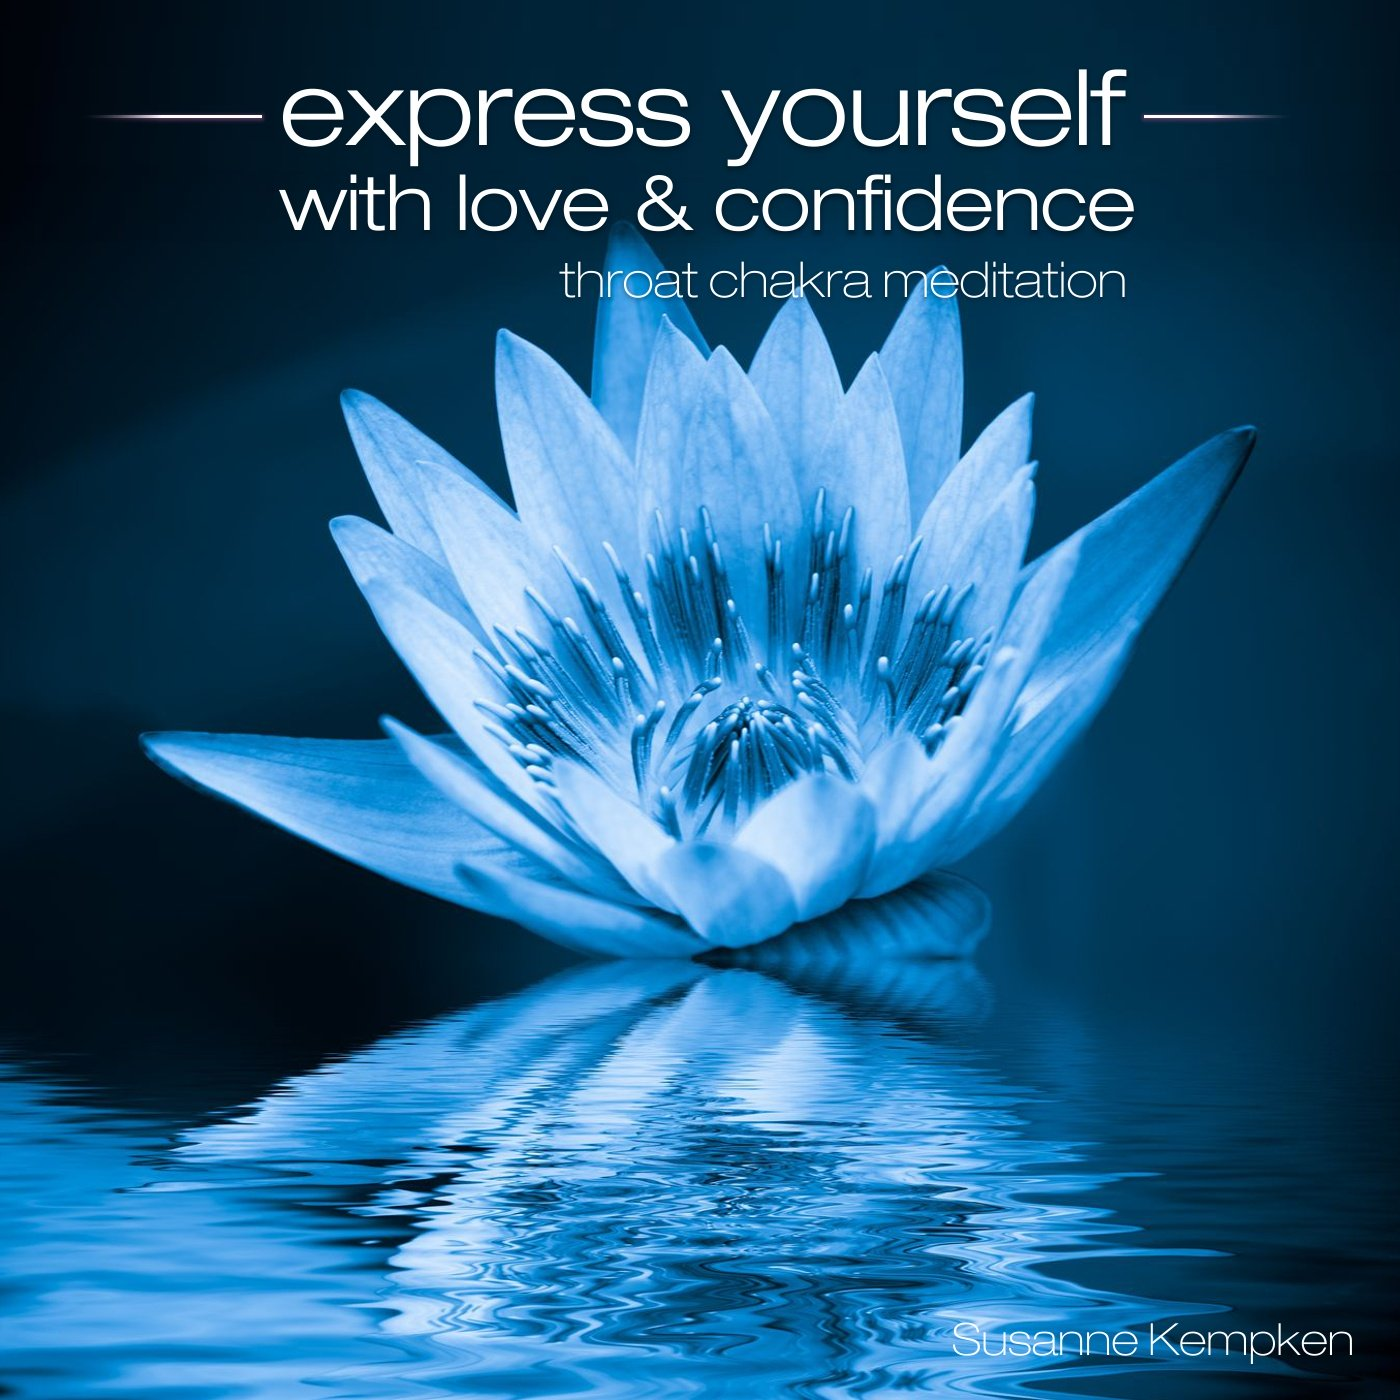 Express Yourself with Love & Confidence - Throat Chakra Meditation By Susanne Kempken